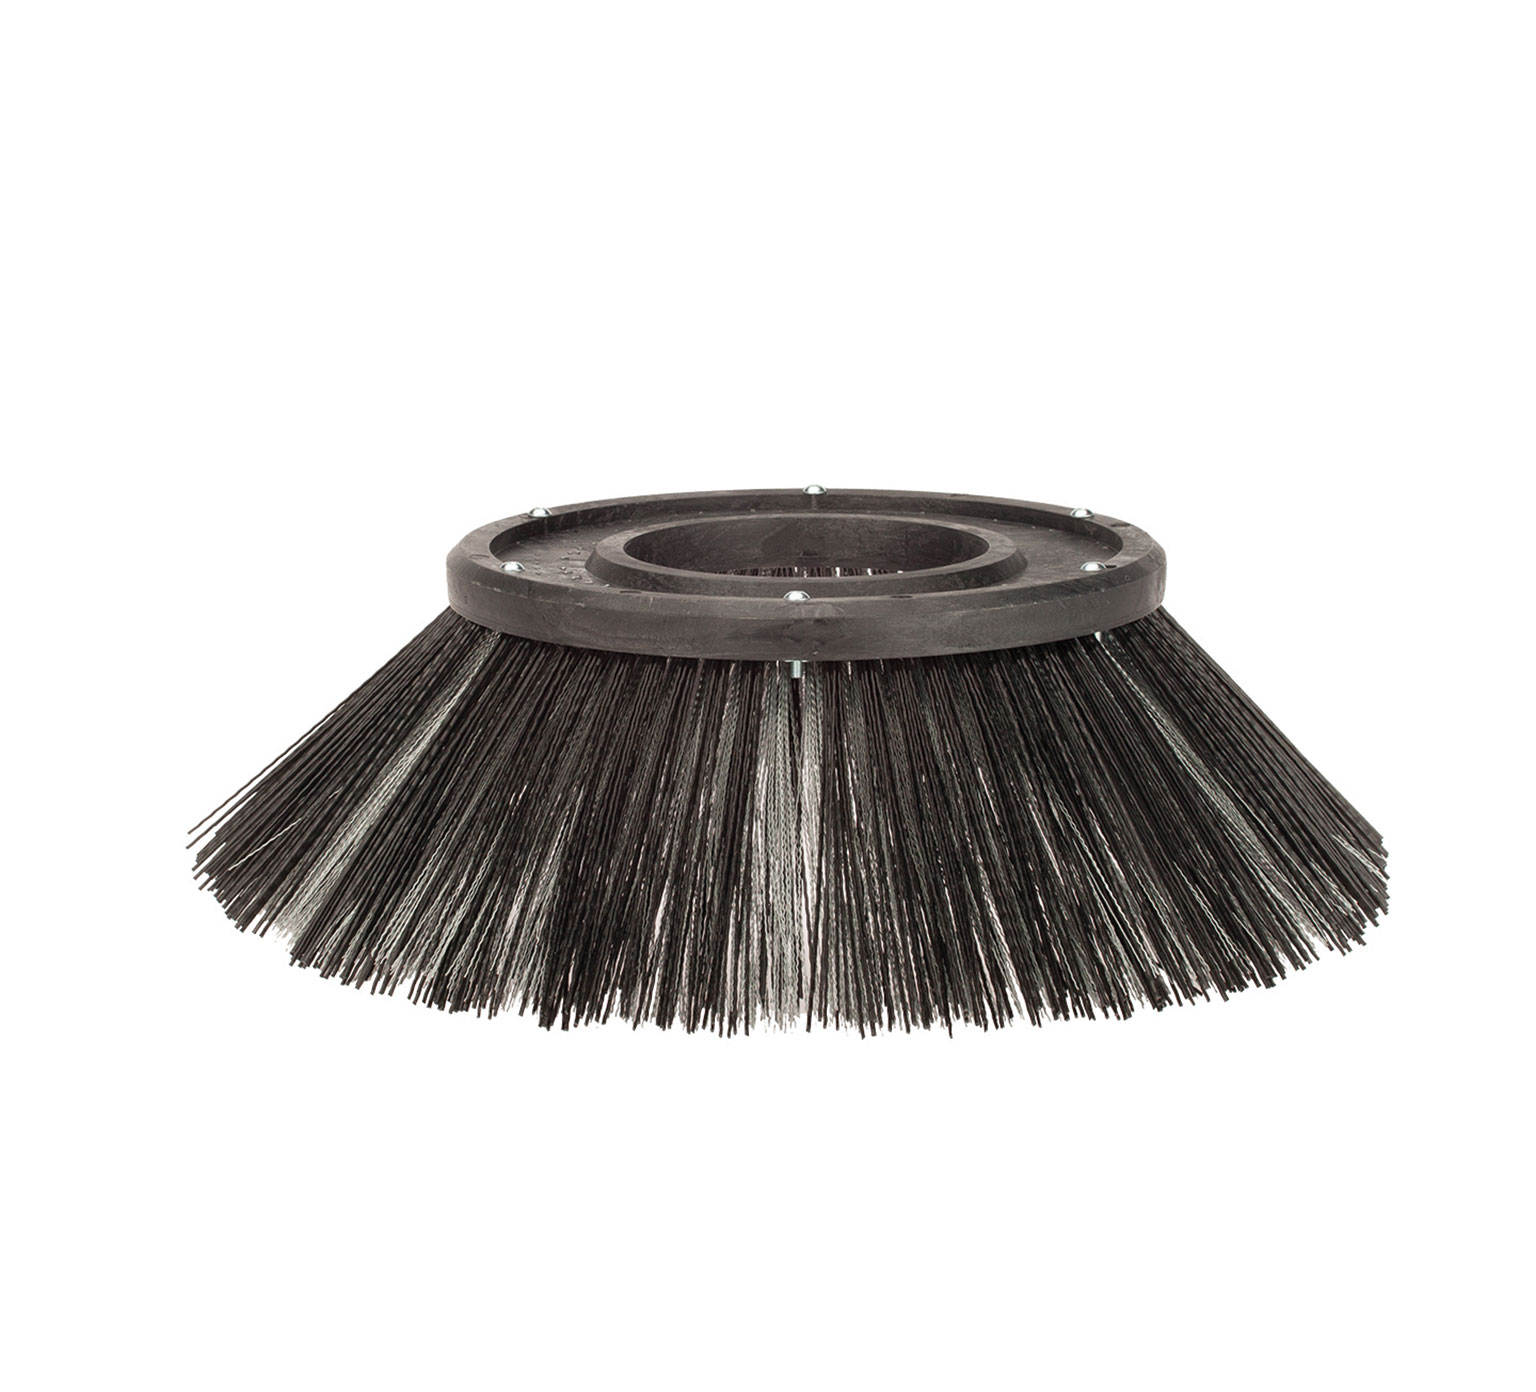 NB061 Polypropylene/Wire Brush alt 1